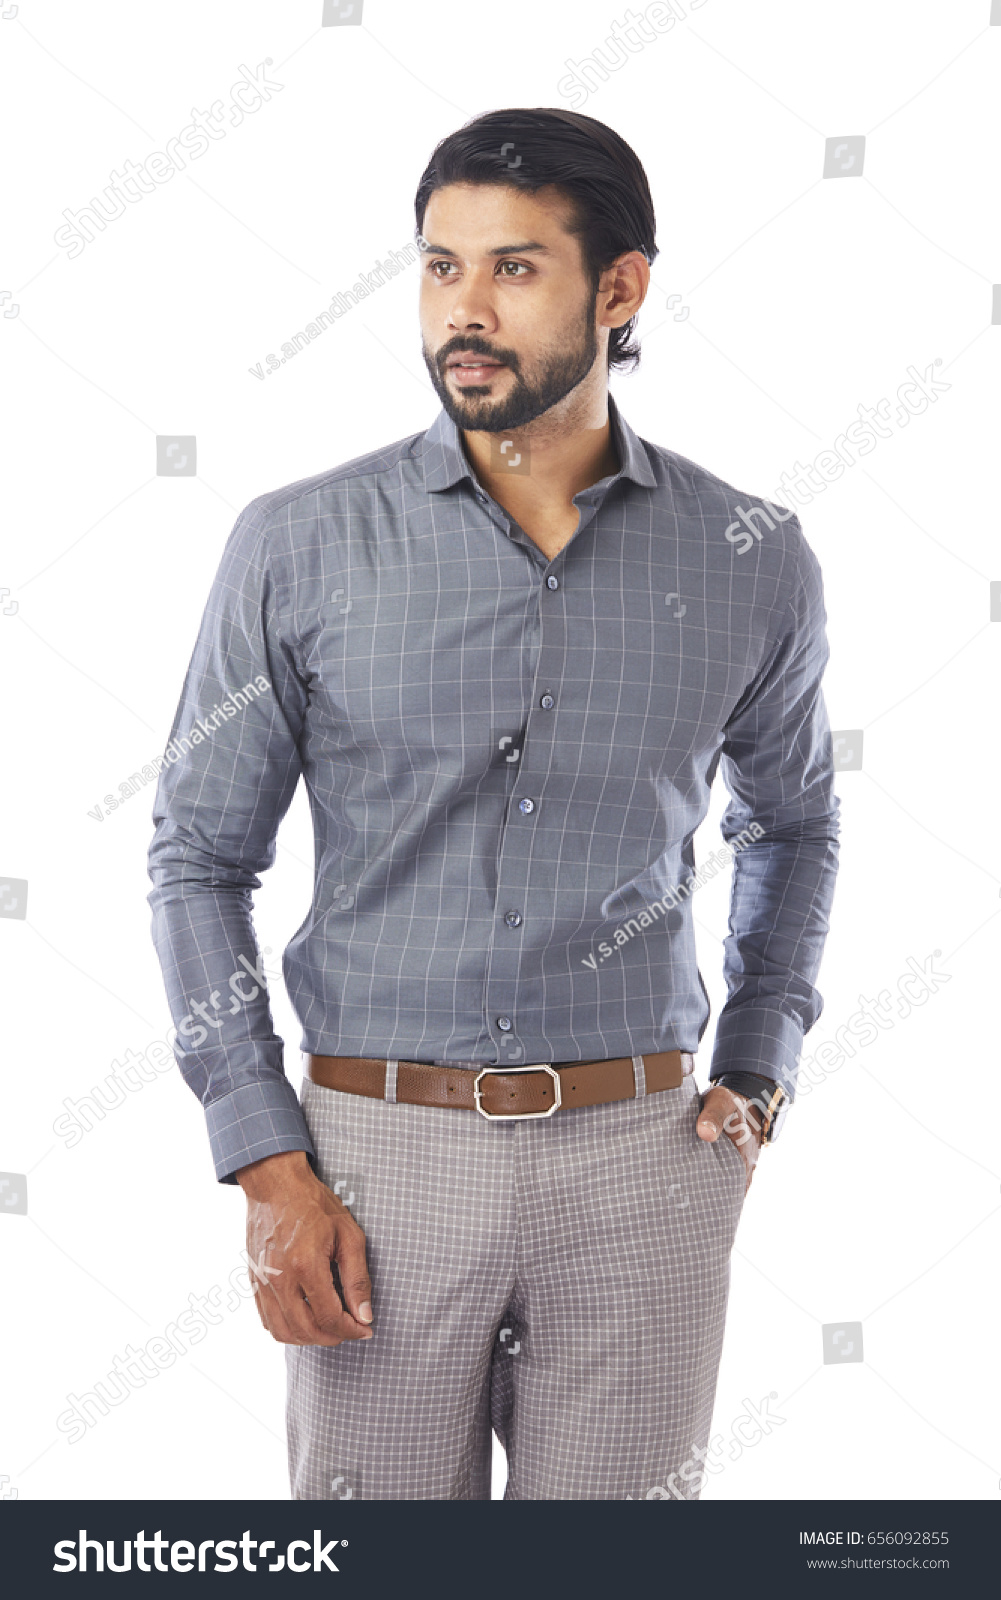 Young Man Wearing Formal Dress On Stock Photo 656092855 - Shutterstock